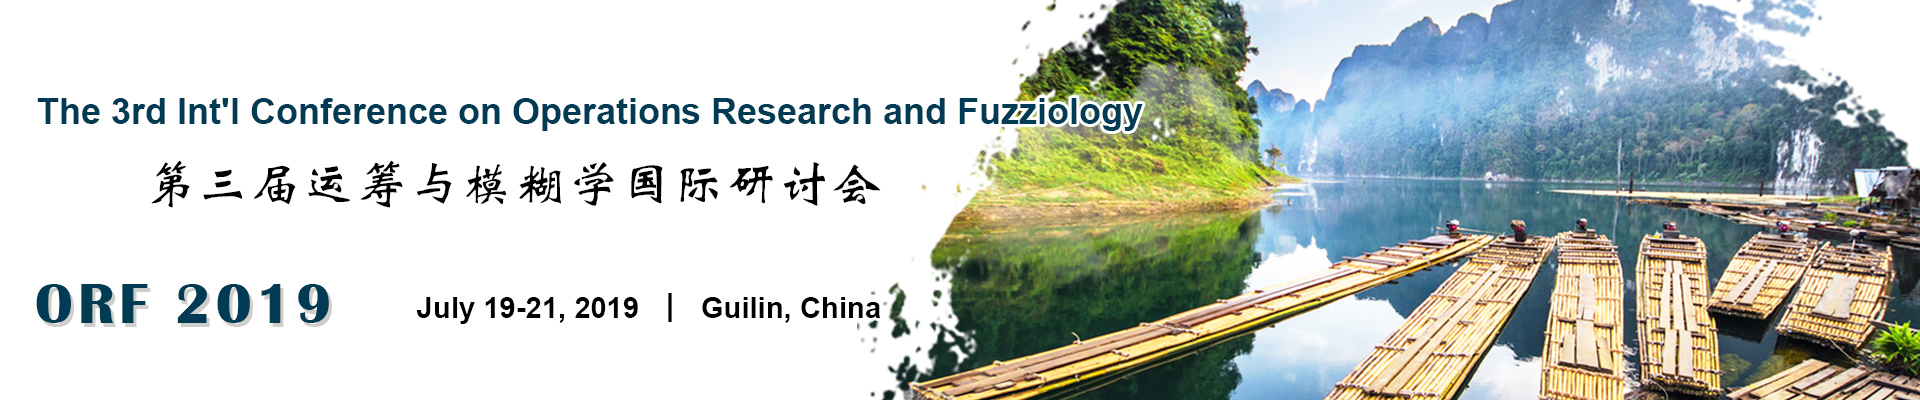 The 3rd Int'l Conference on Operations Research and Fuzziology (ORF 2019), Guilin, Guangxi, China